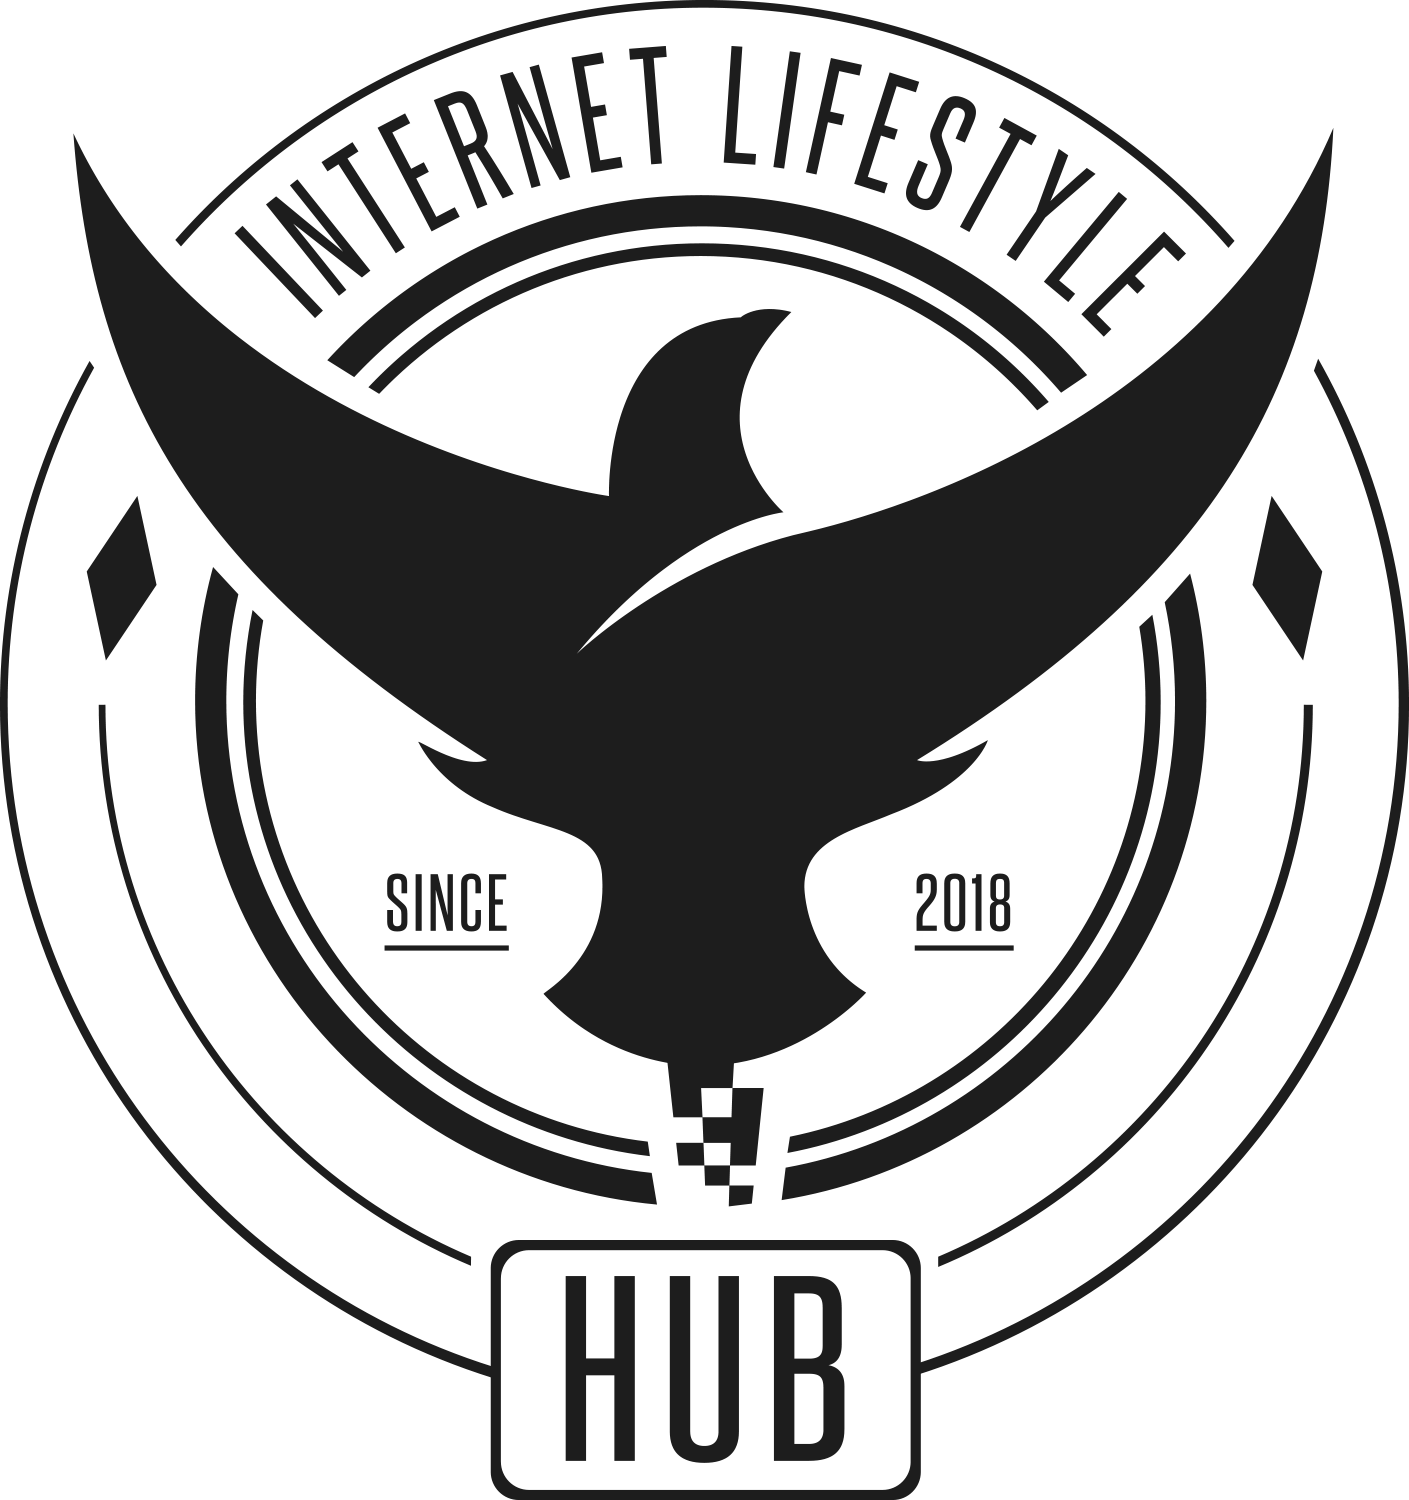 Internet Lifestyle Hub - Freedom Blog